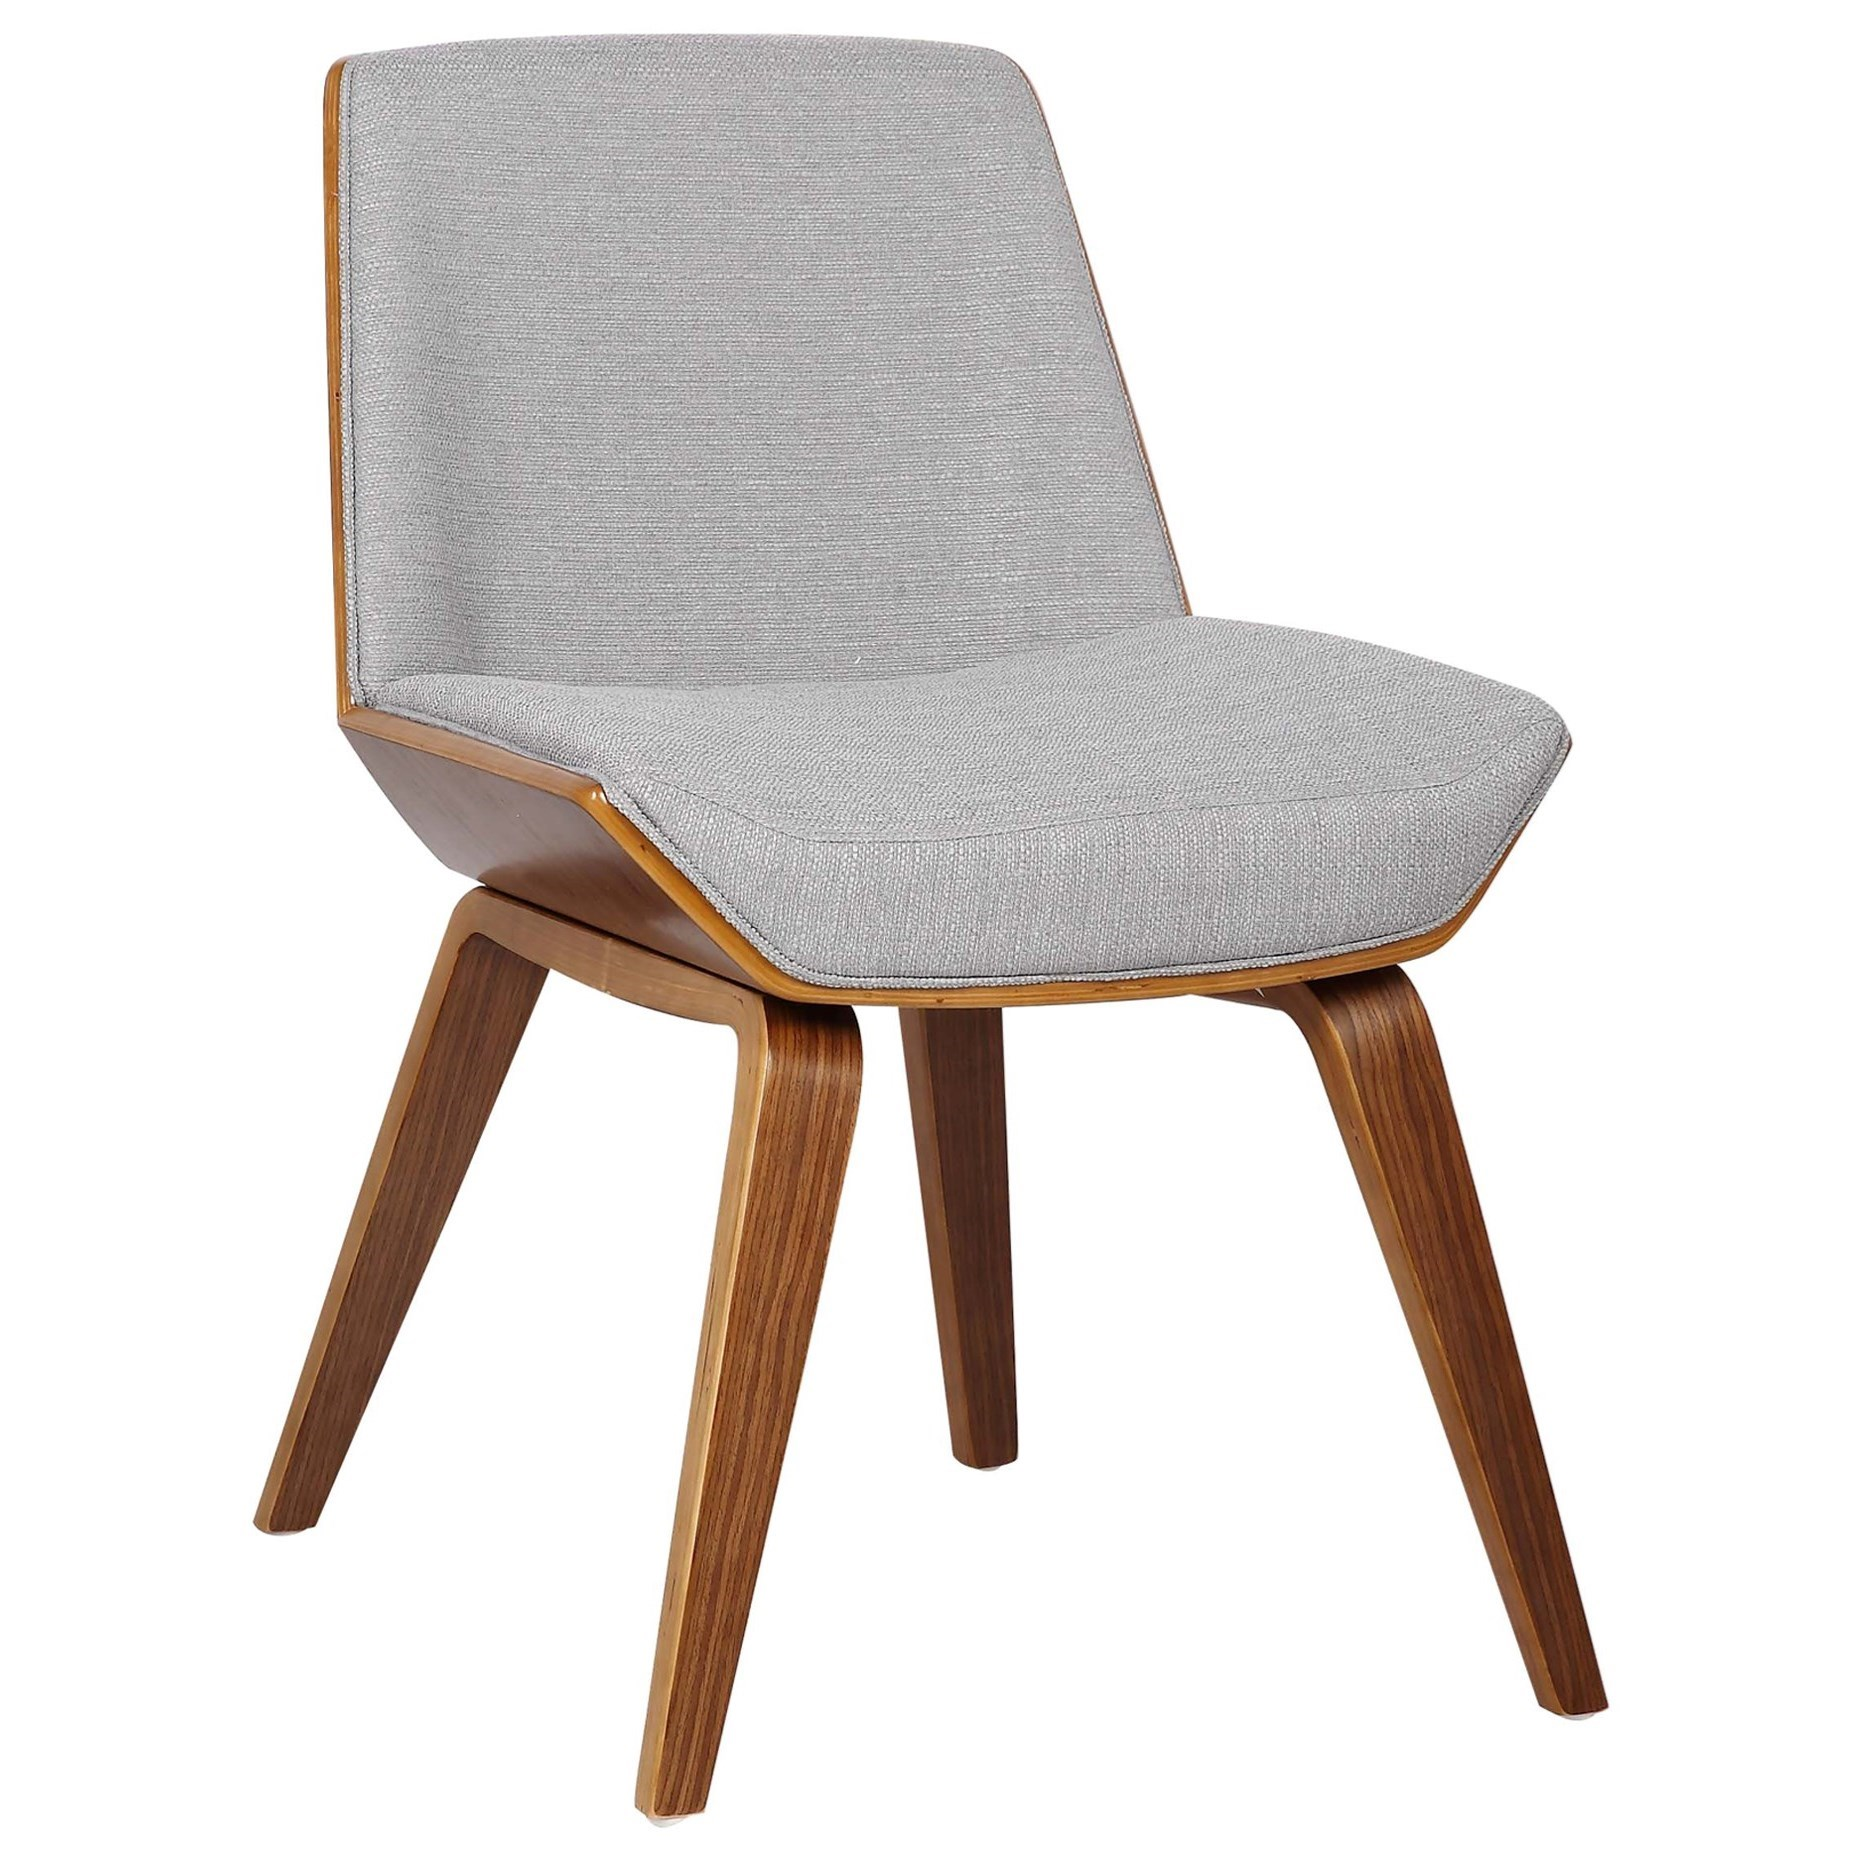 Agi Mid-Century Dining Chair in Walnut Wood by Armen Living at Fisher Home Furnishings